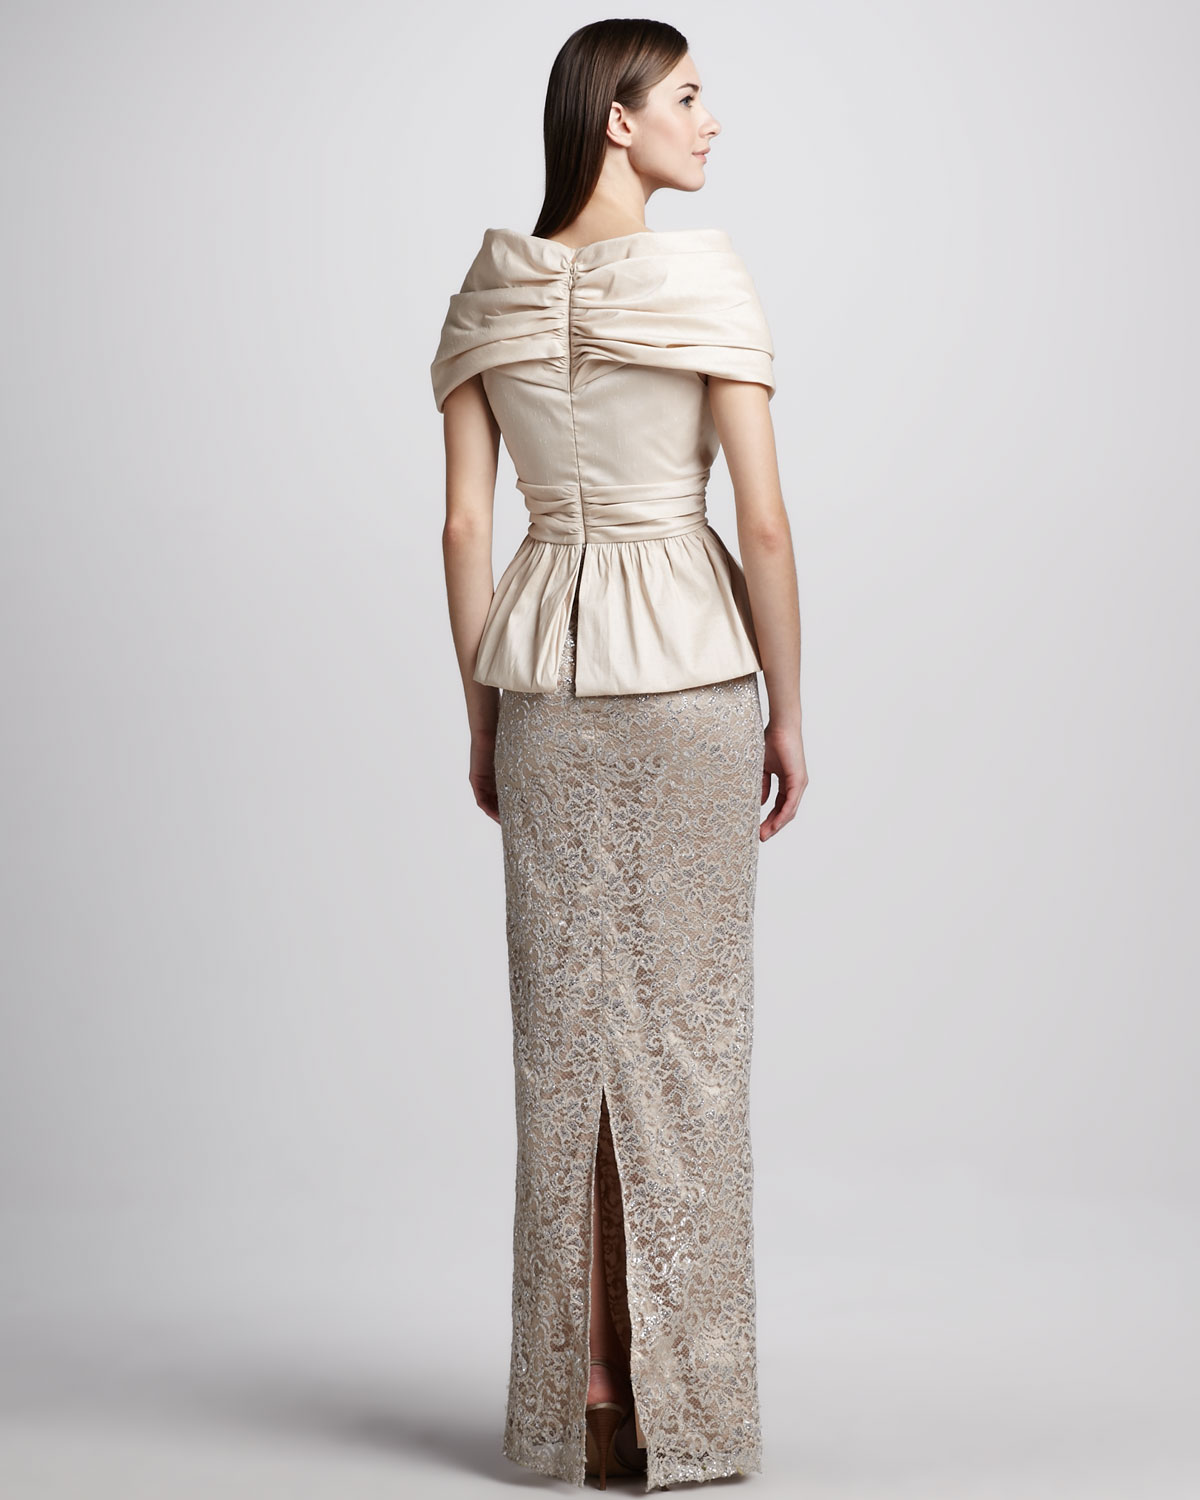 Modern Badgley Mischka Peplum Gown Adornment - Wedding and flowers ...